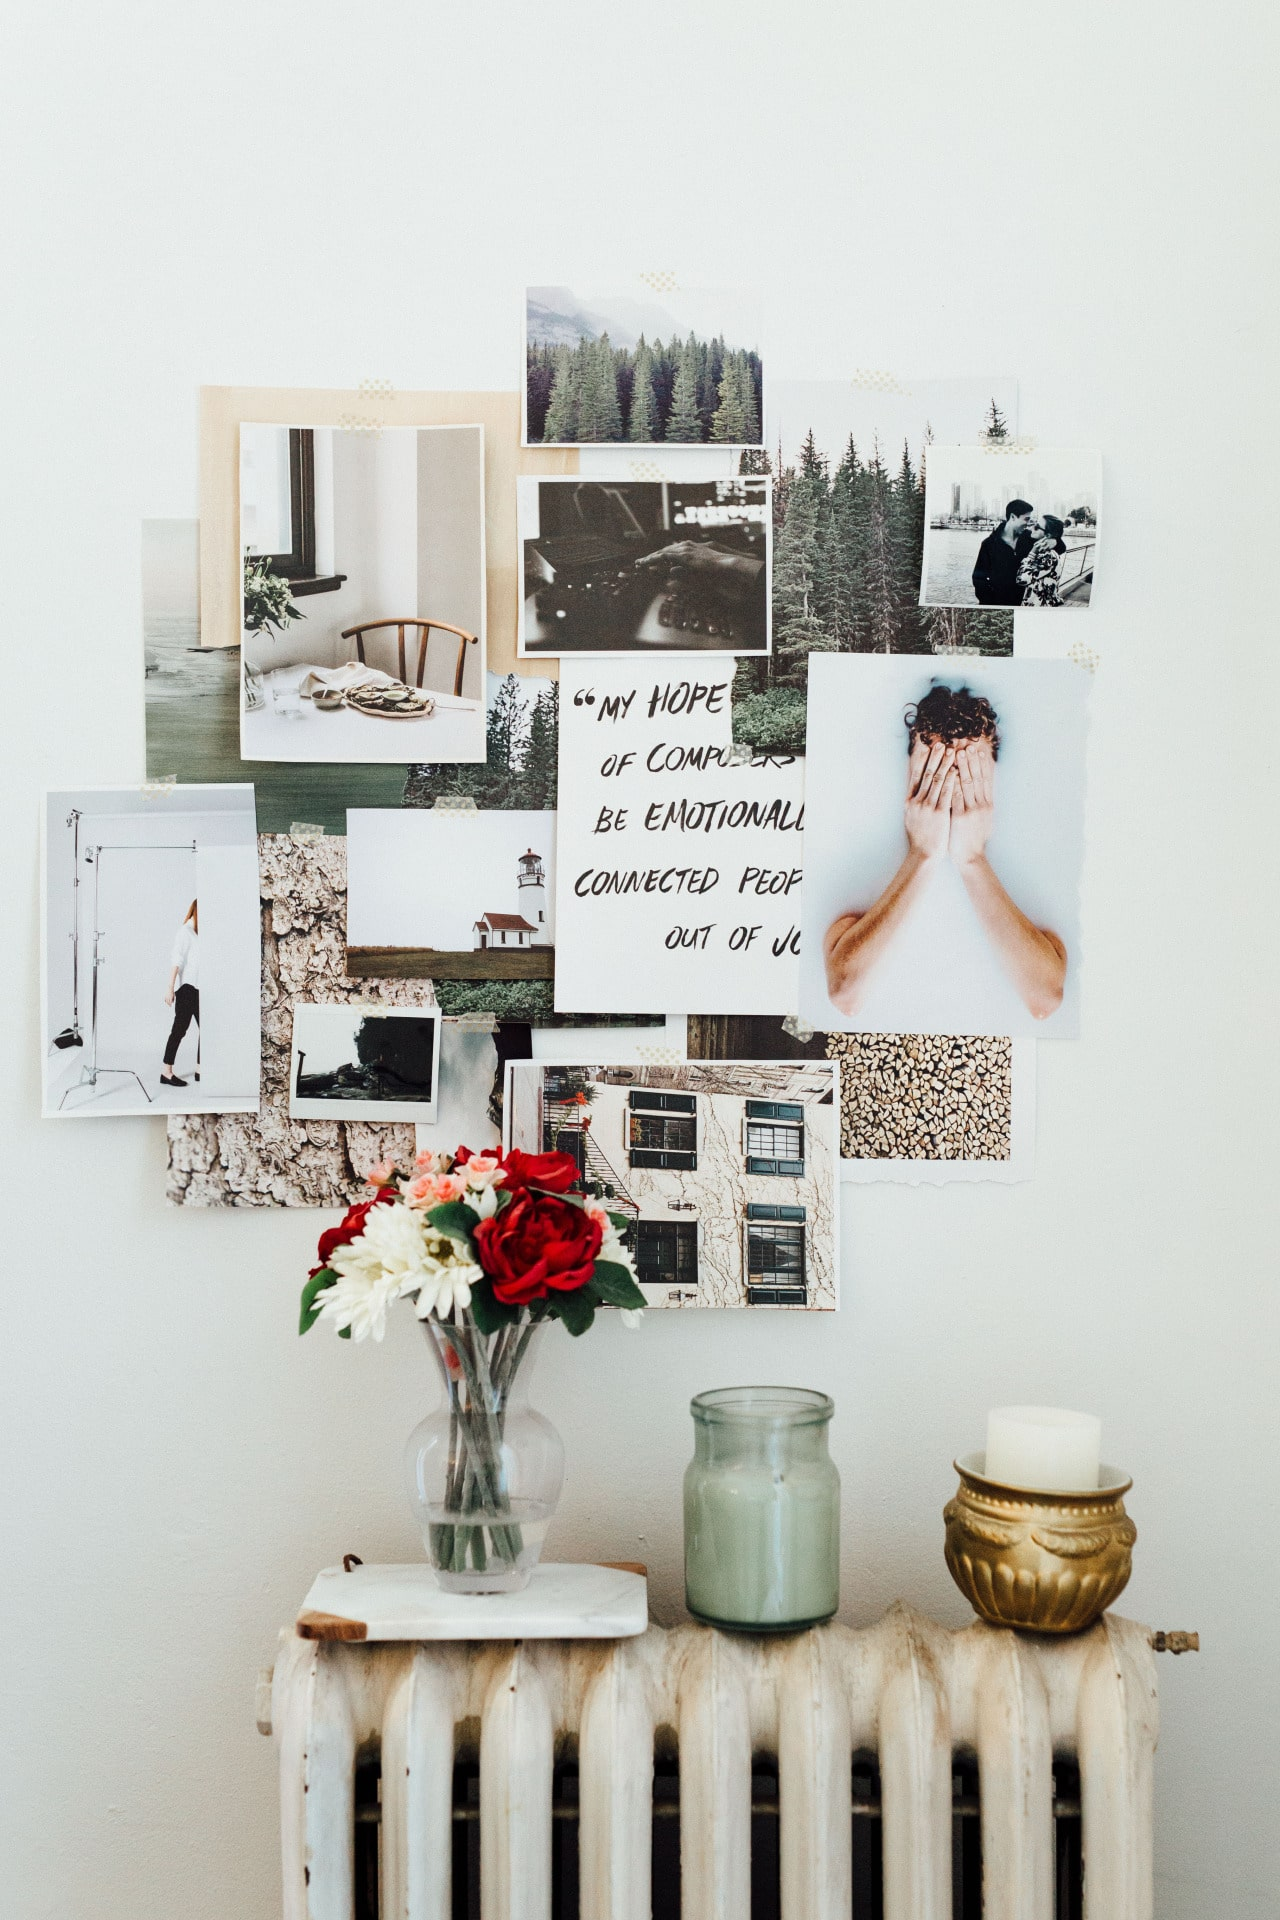 Using mood boards to develop your brand notes on design Home decor pinterest boards to follow